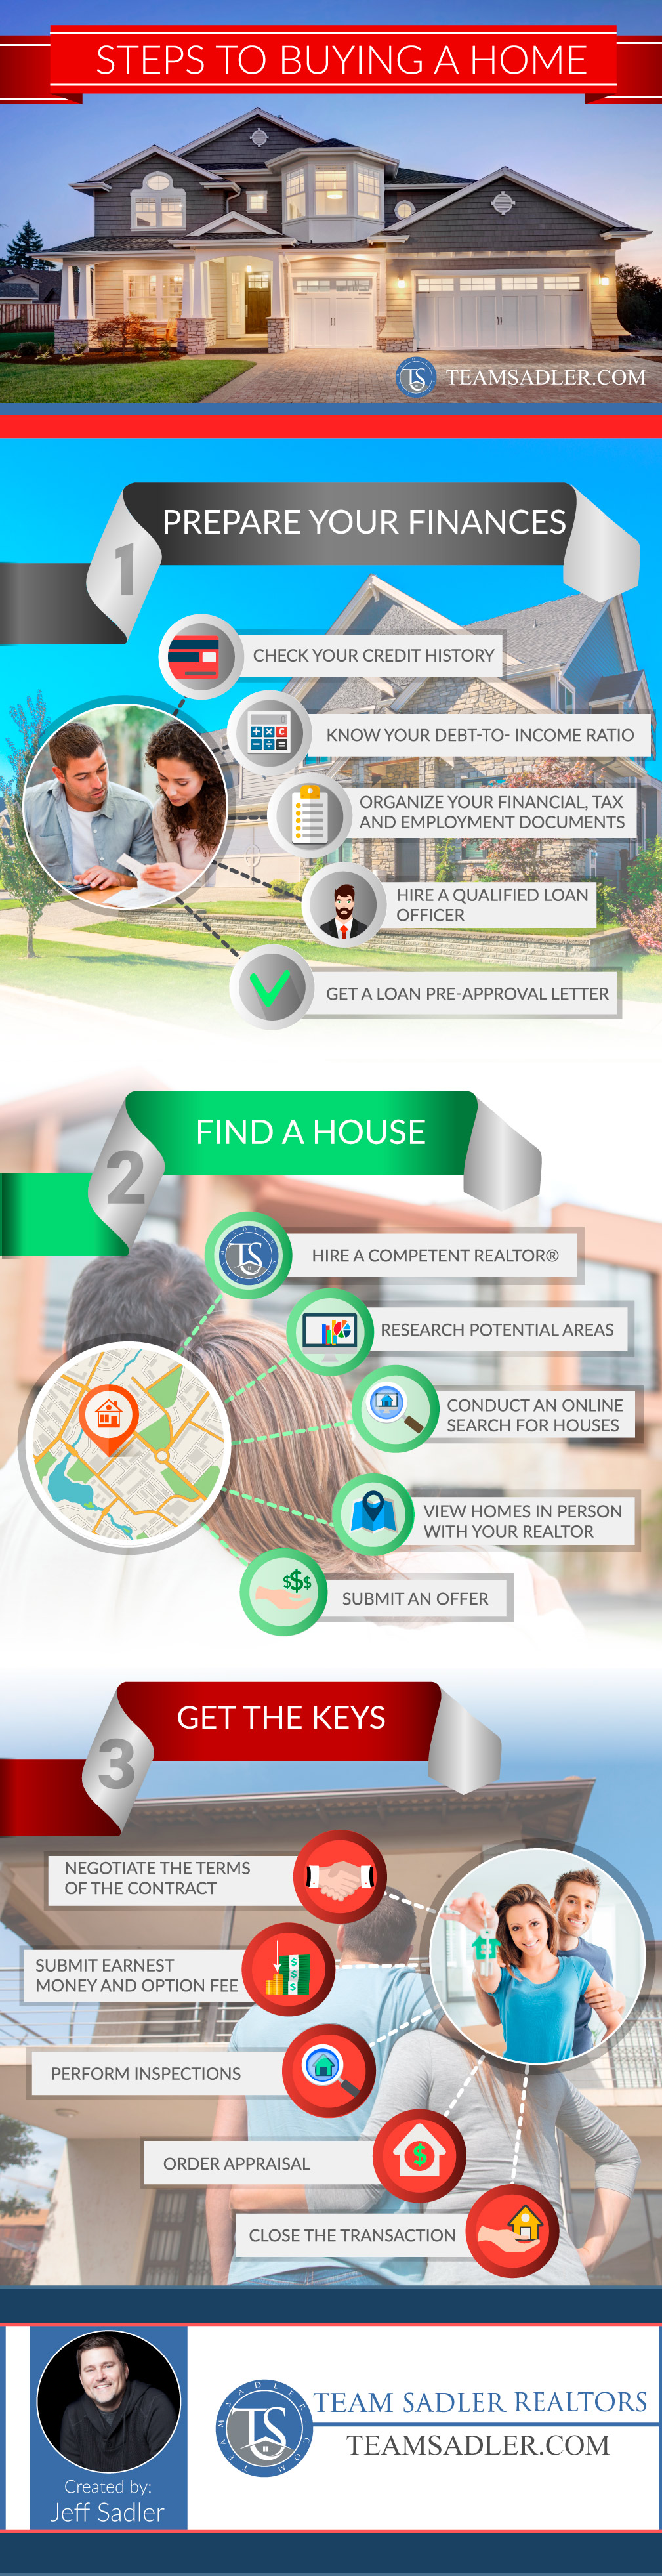 Steps_to_buying_a_home_infographic_final